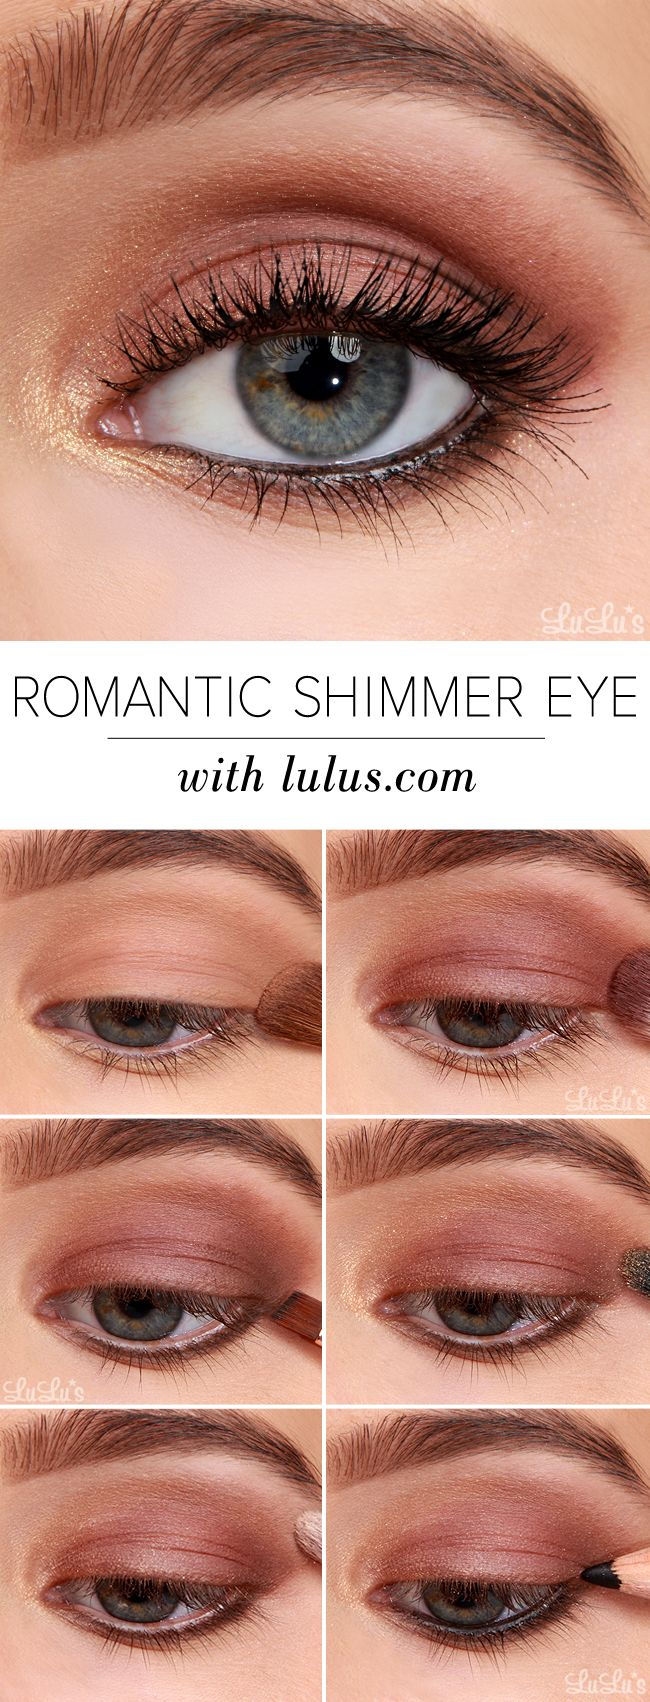 Your lids will L-O-V-E this week's Romantic Shimmer Eyeshadow Tutorial! To get this lovely look, check out the LuLu*s blog for the full tutorial!